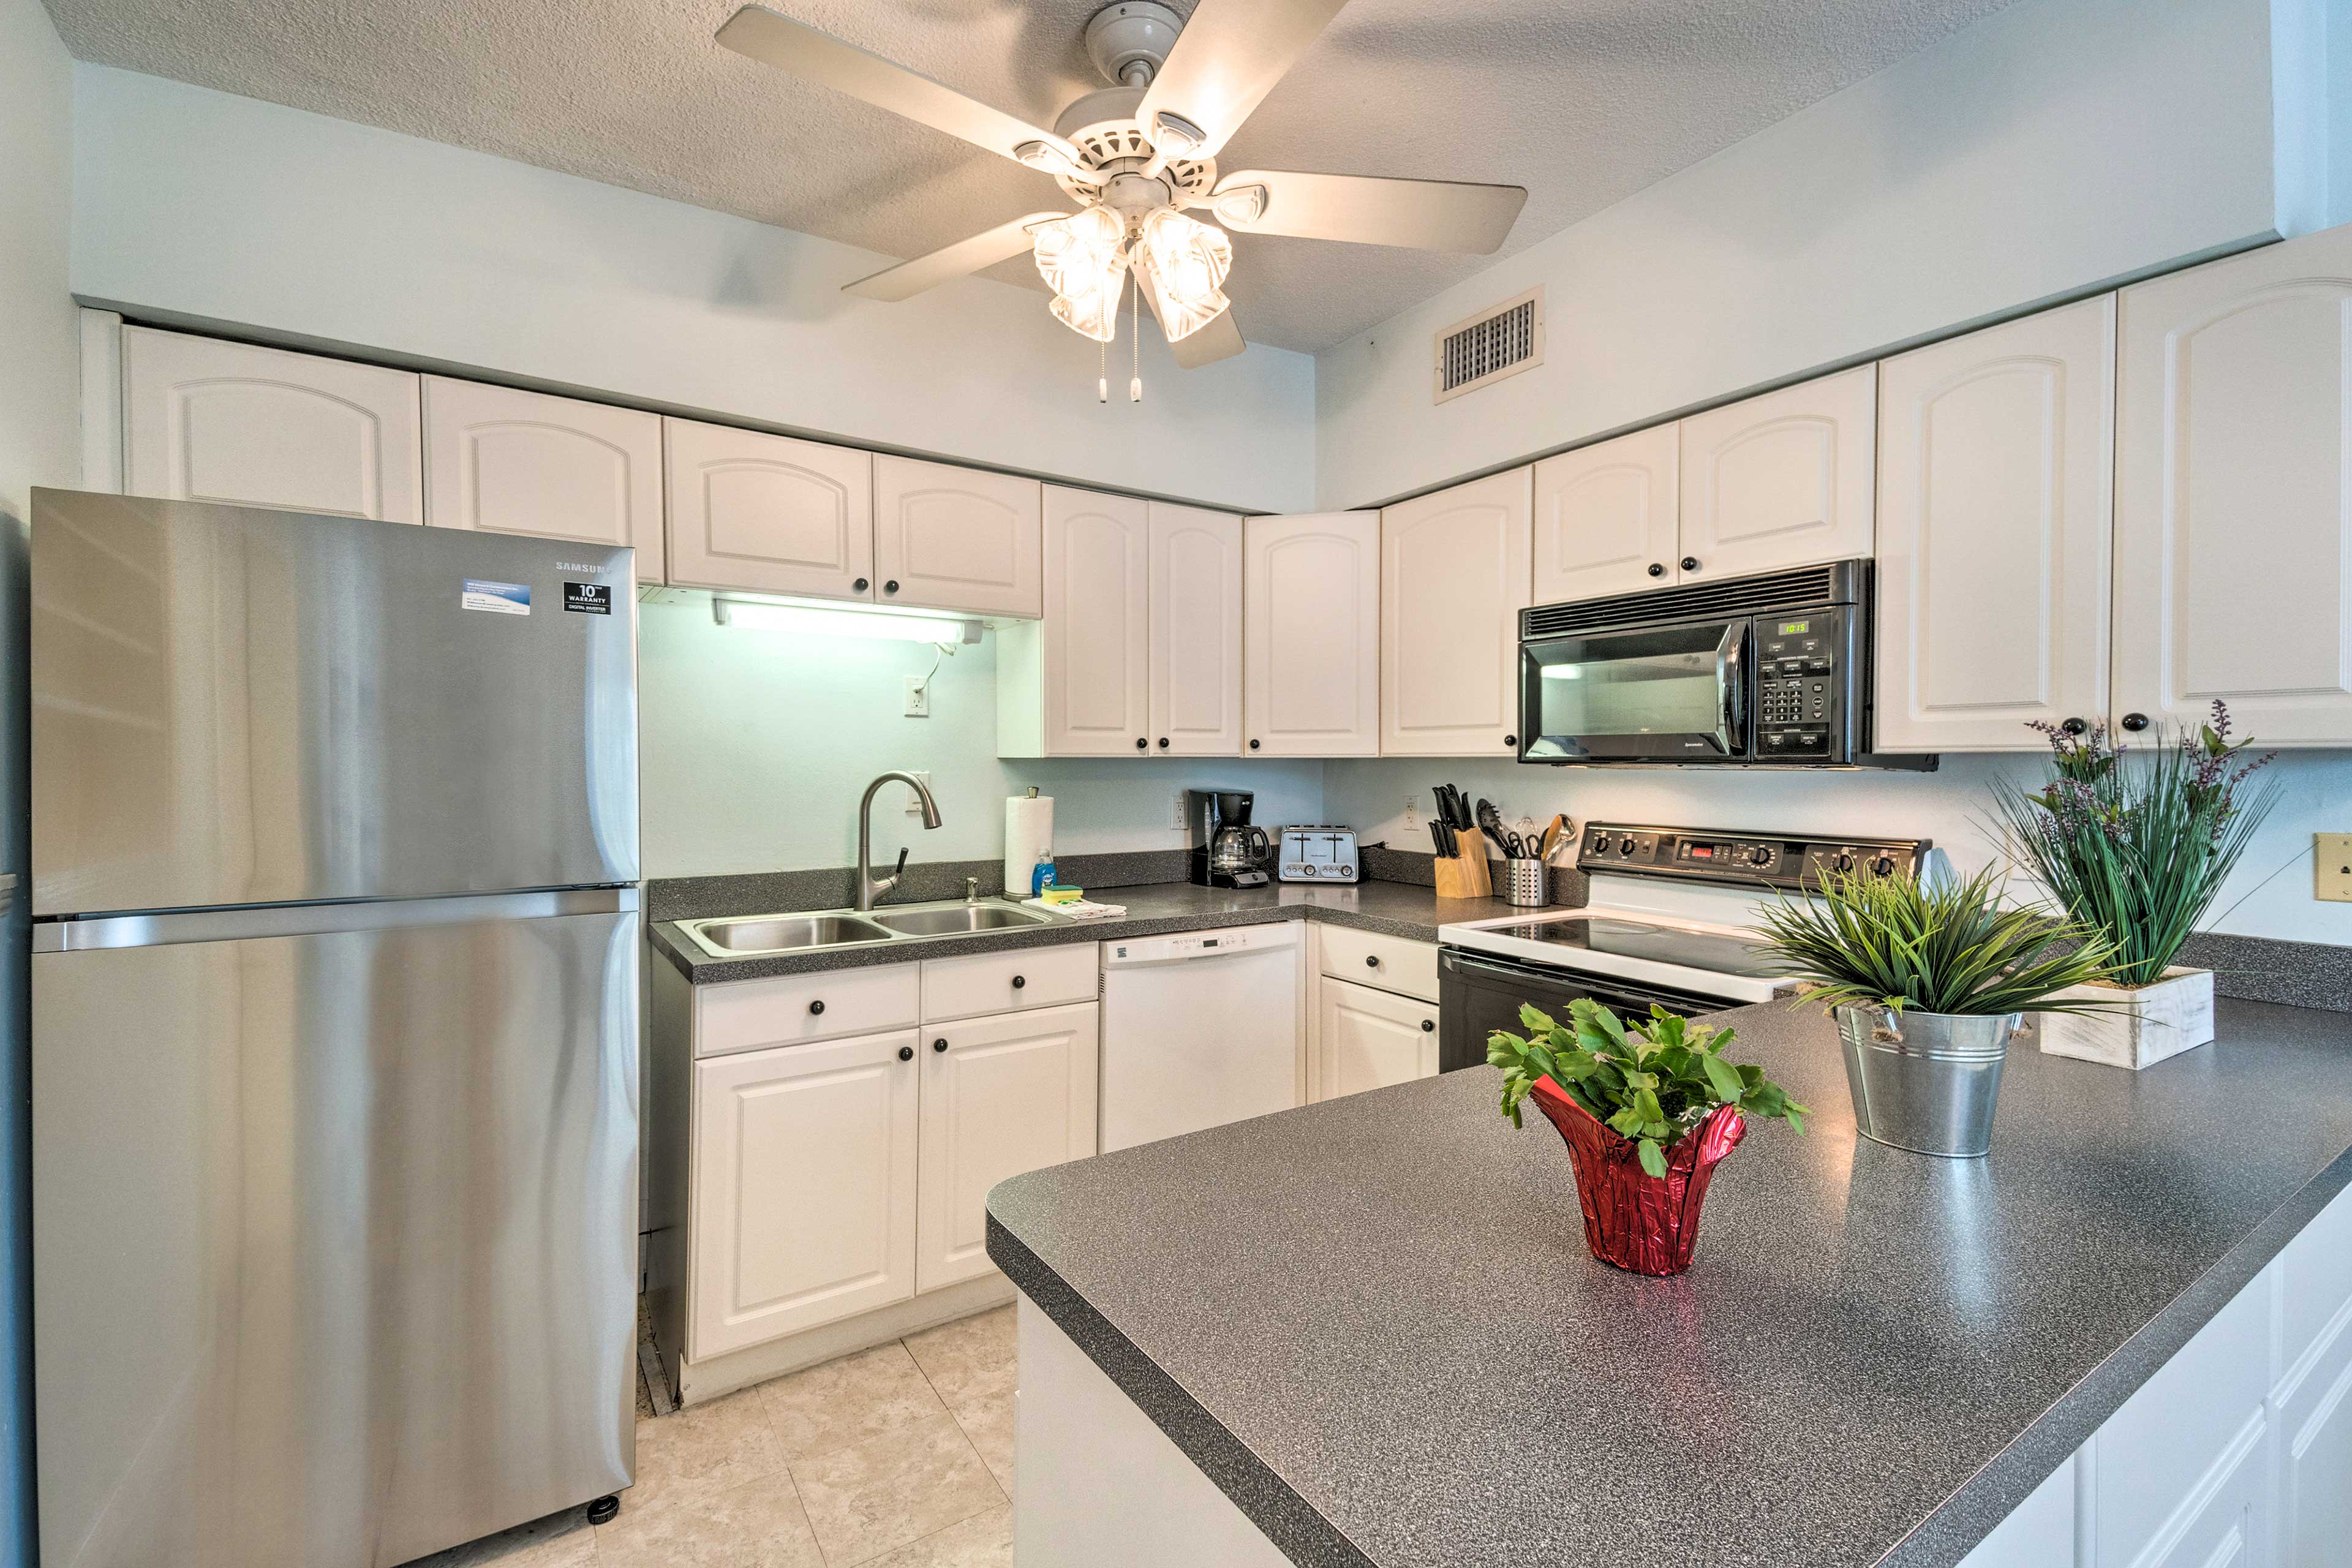 The kitchen comes fully equipped with updated appliances.